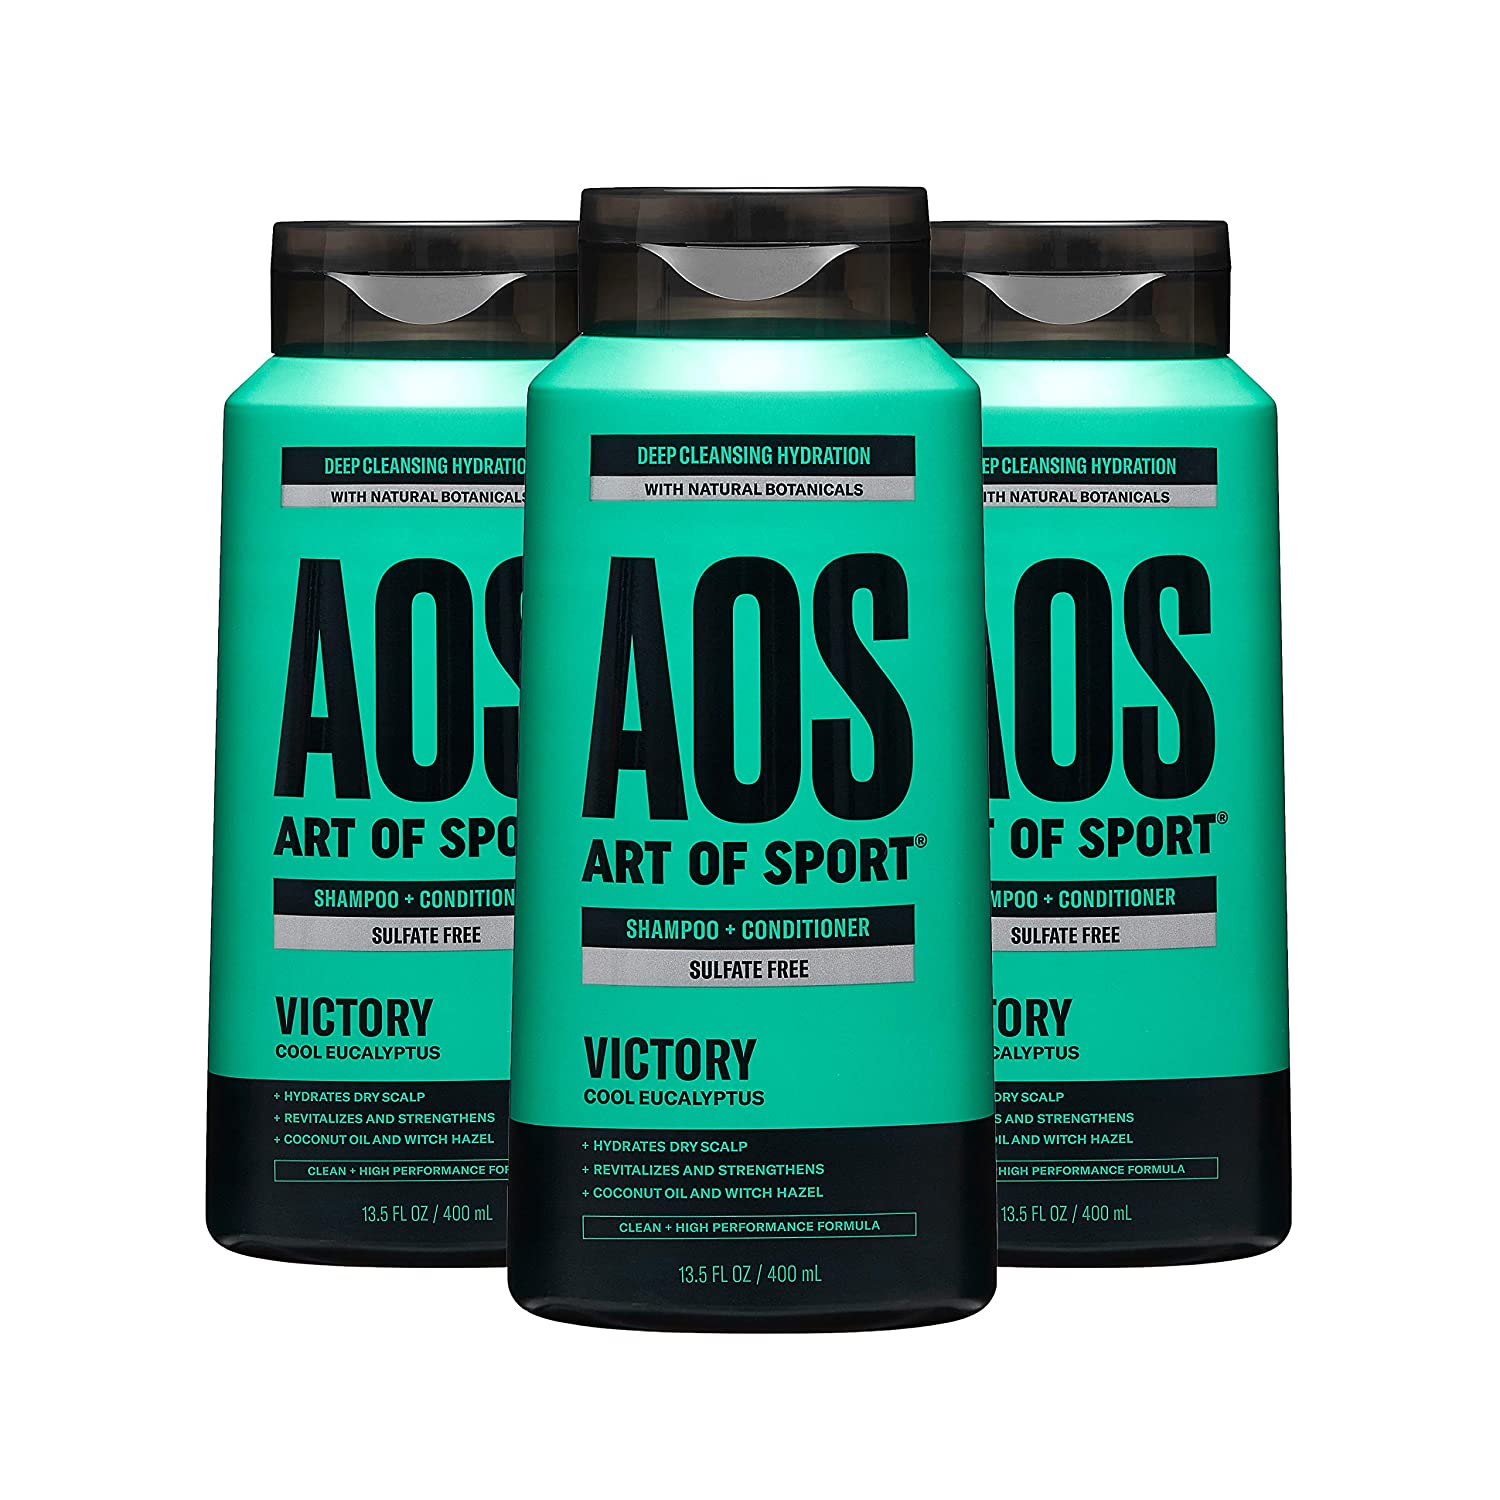 Art of Sport 2-in-1 Shampoo and Conditioner, Victory scent, 3-pack; best shampoo for men